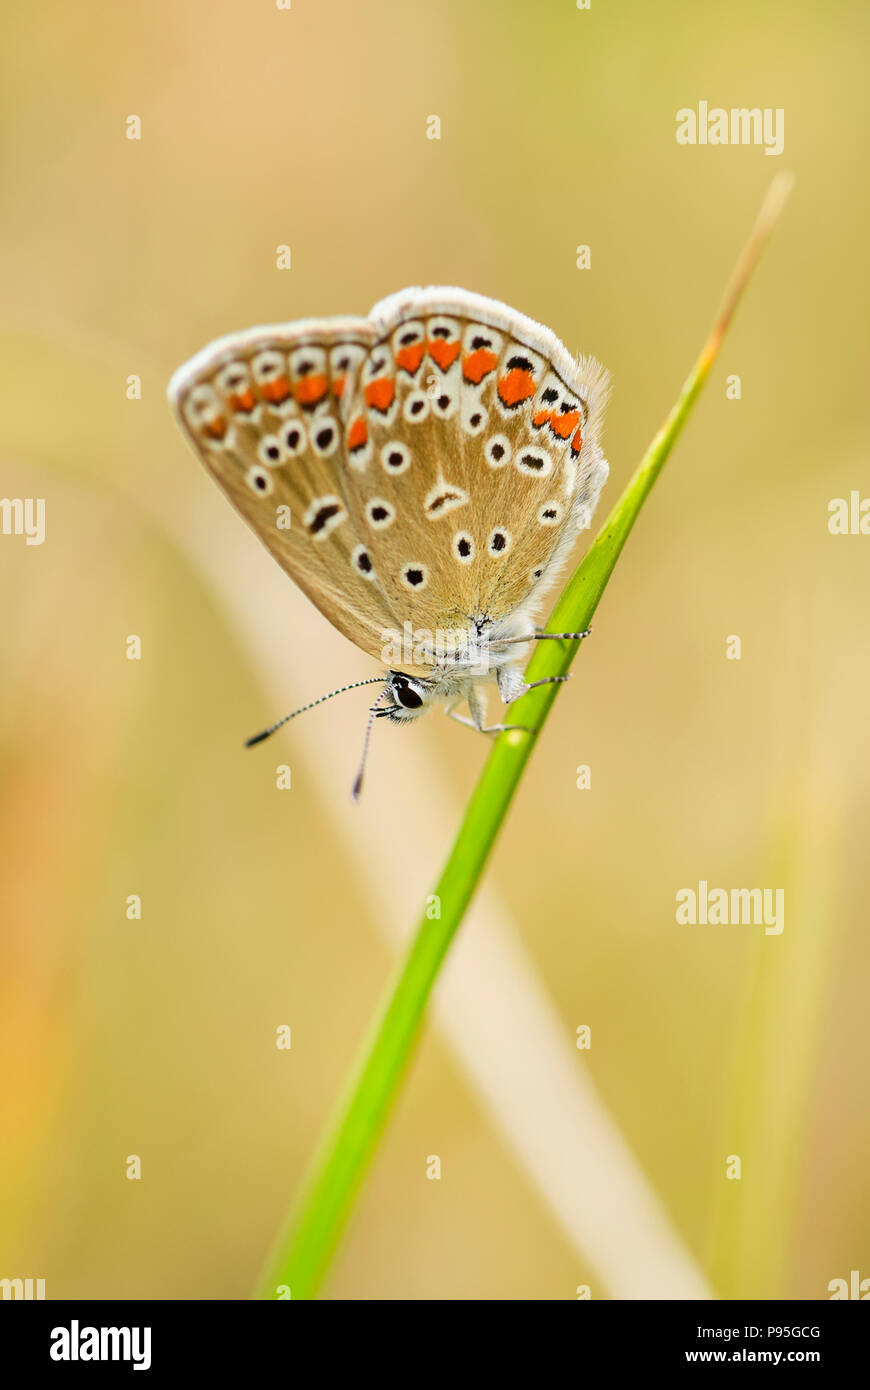 Common Blue butterfly - Polyommatus icarus, beautiful colored buttefly from European meadows and grasslands. - Stock Image